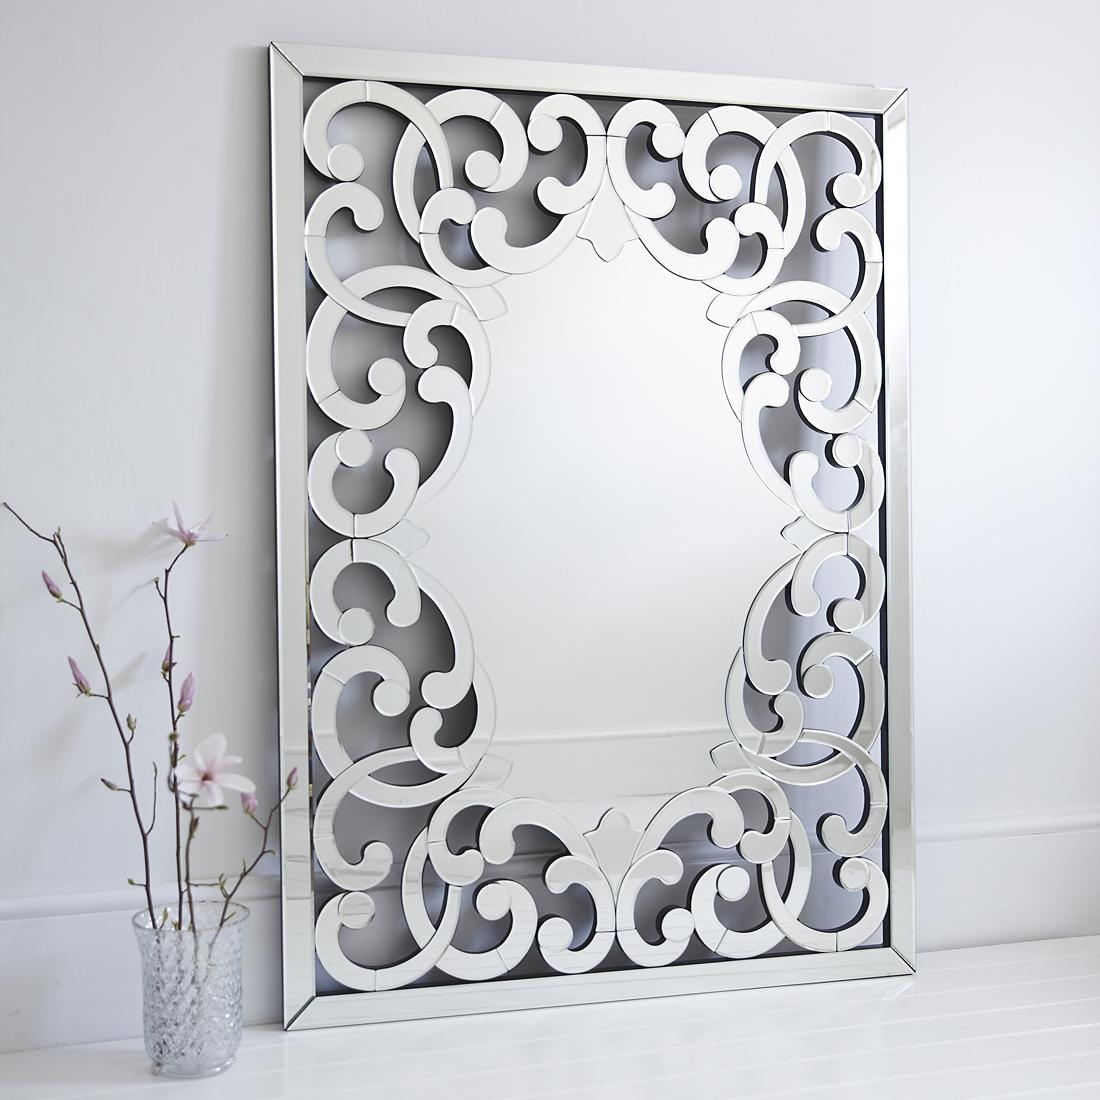 Large Venetian Fleur De Lis Wall Mirror – Primrose & Plum With Regard To Venetian Style Mirrors (View 20 of 20)